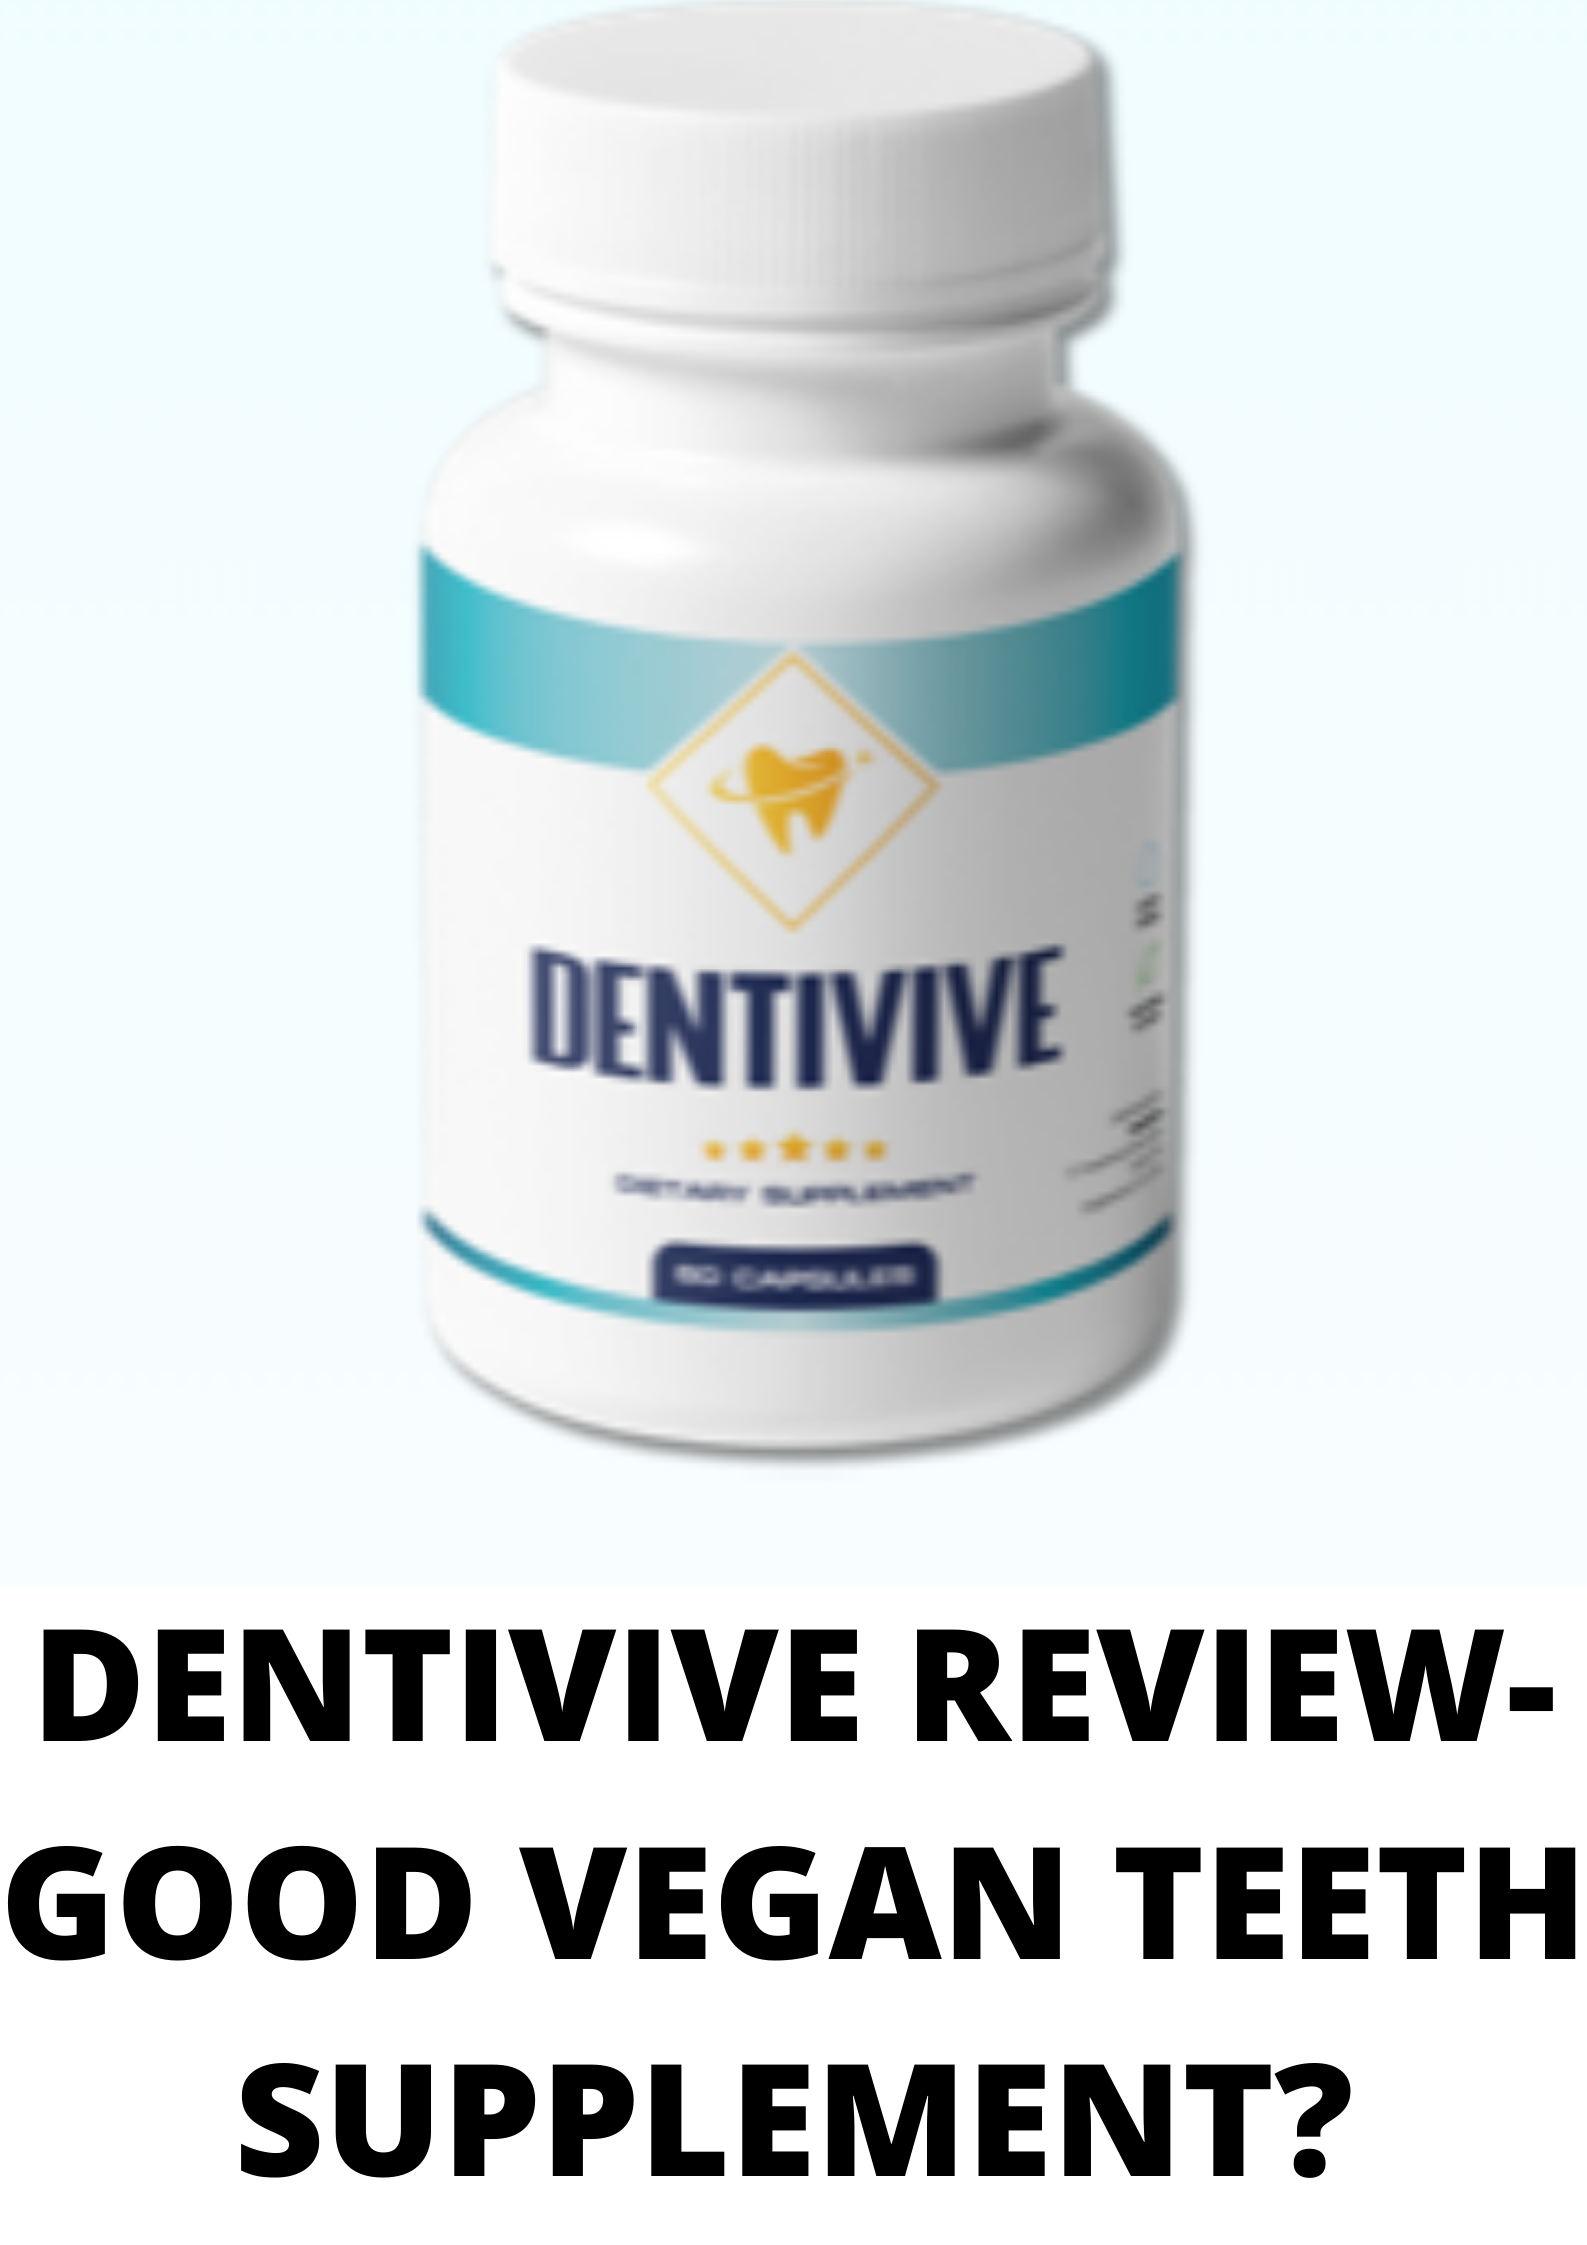 Dentivive Review-Good teeth supplement?